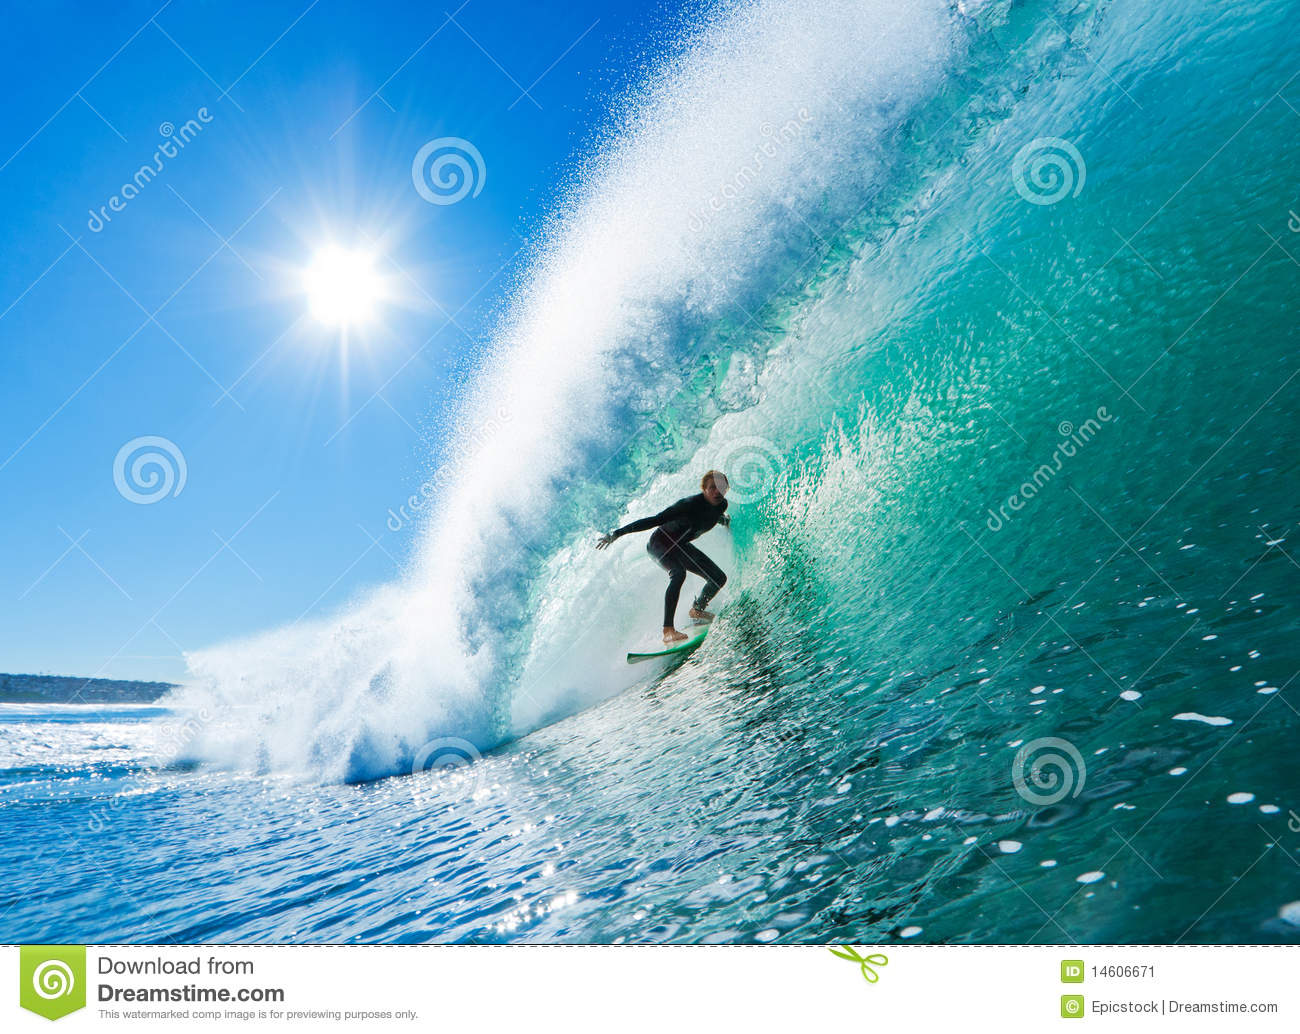 Surfer on Perfect Wave Getting Barreled